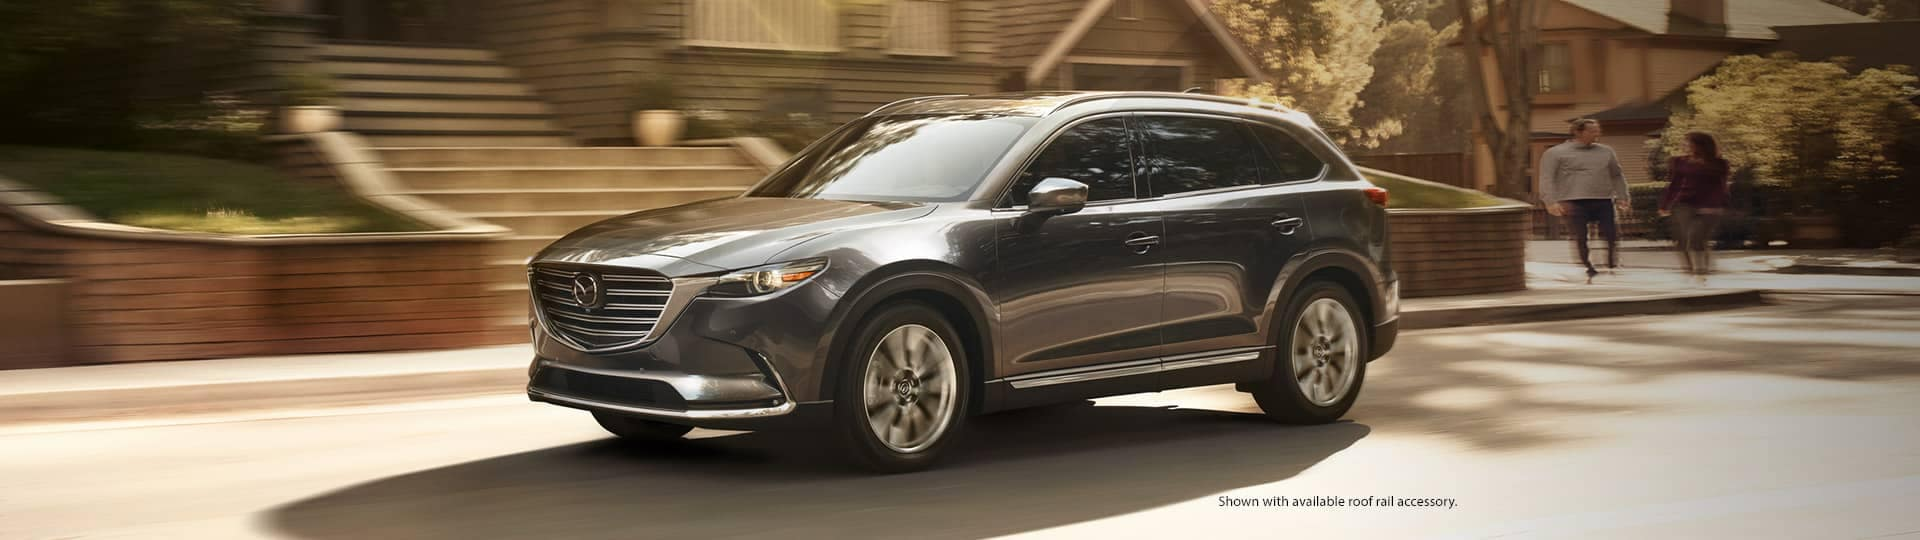 2019 Mazda CX-9 driving in neighbourhood